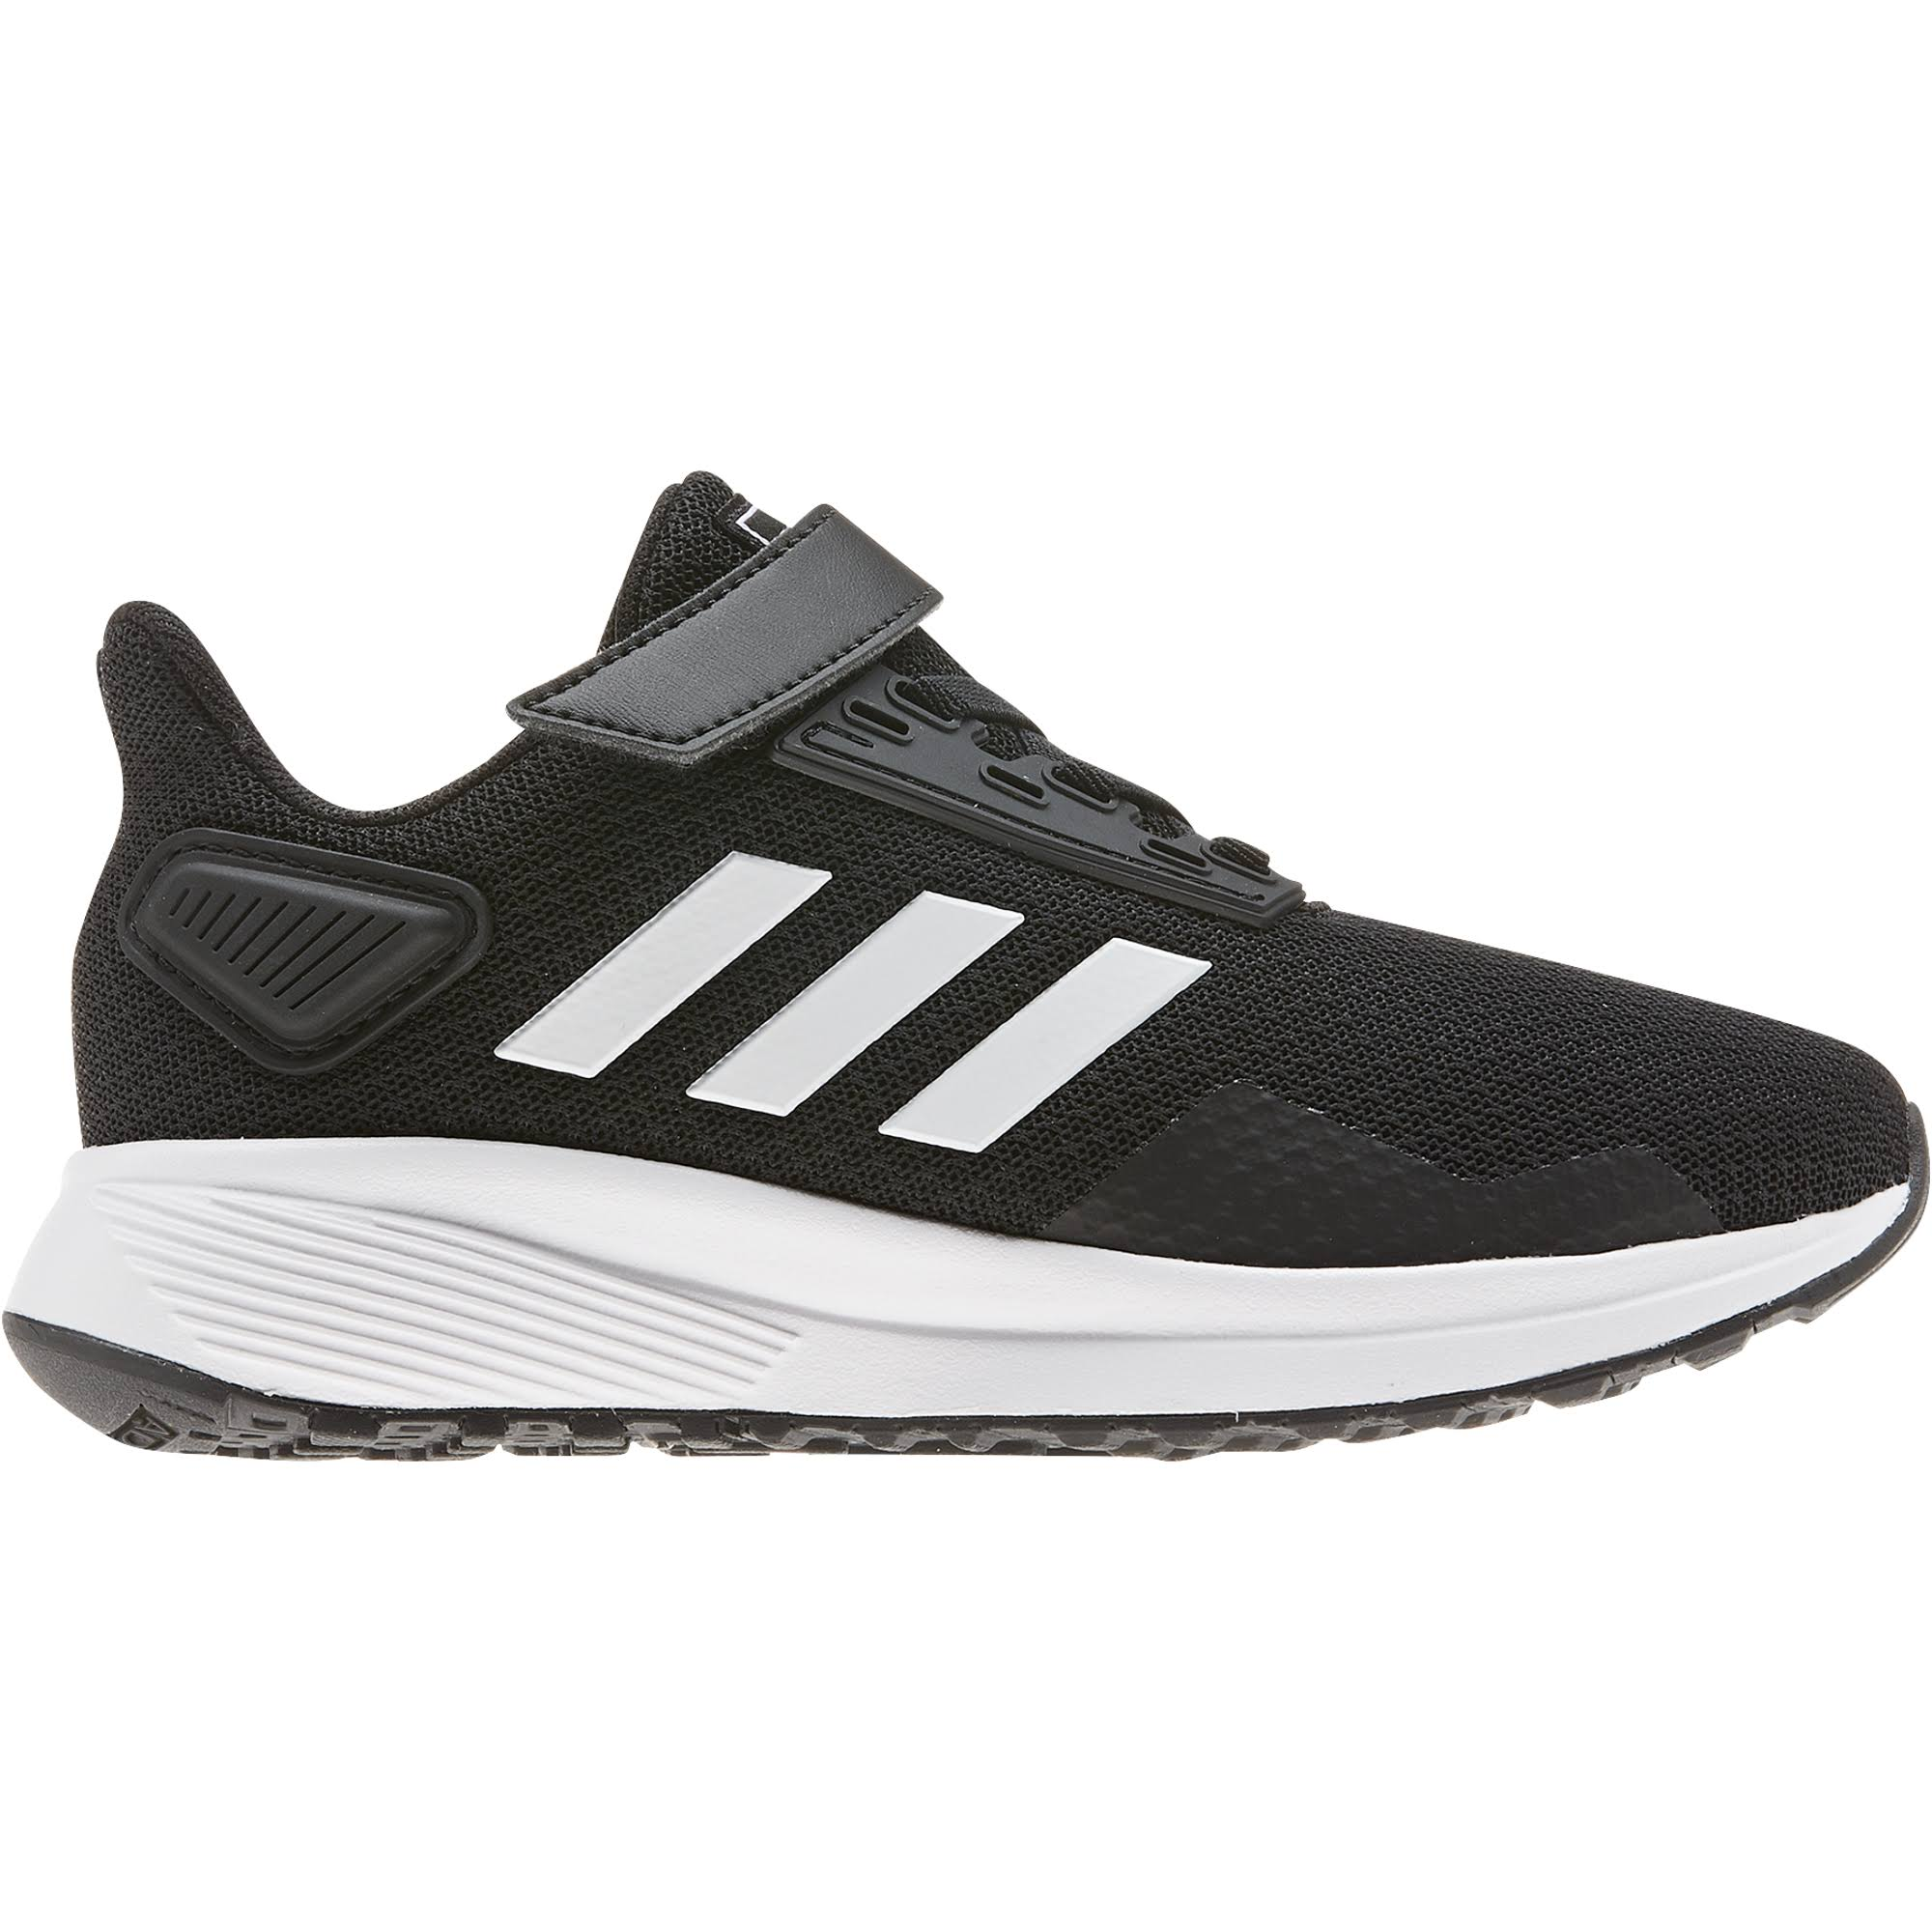 Adidas Duramo 9 Childrens - Black